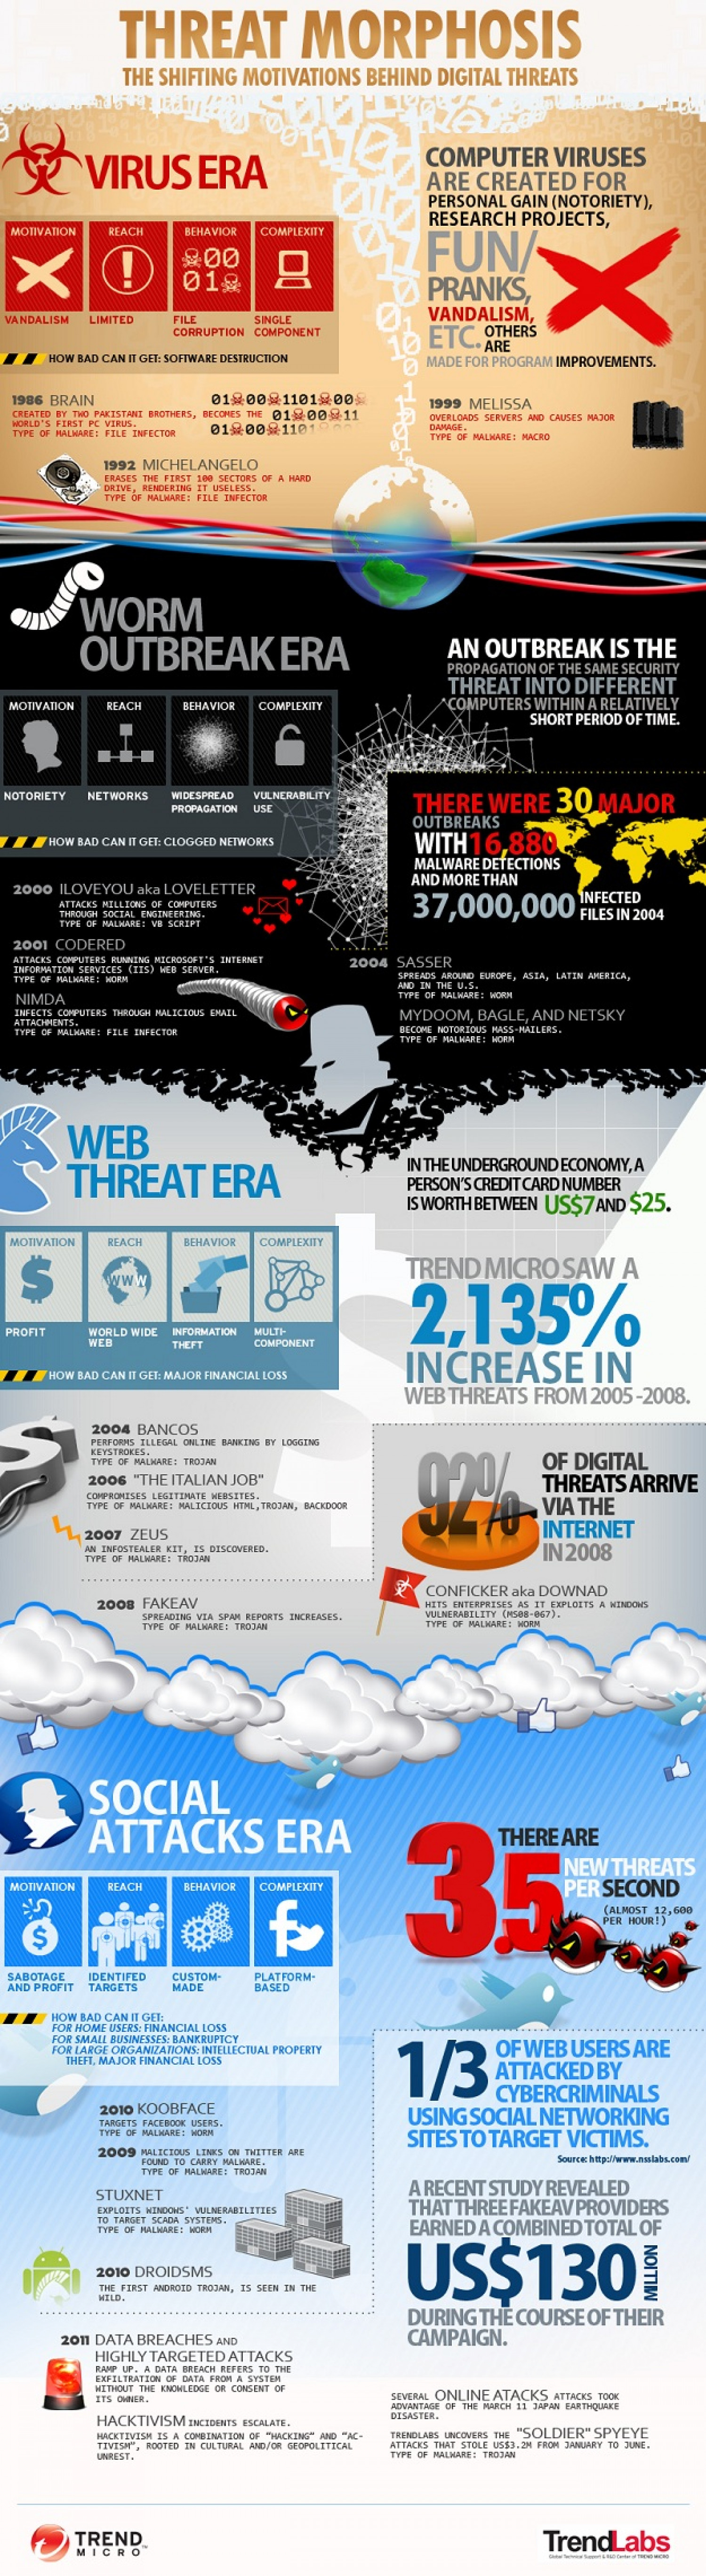 Two Decades of Malware Infographic